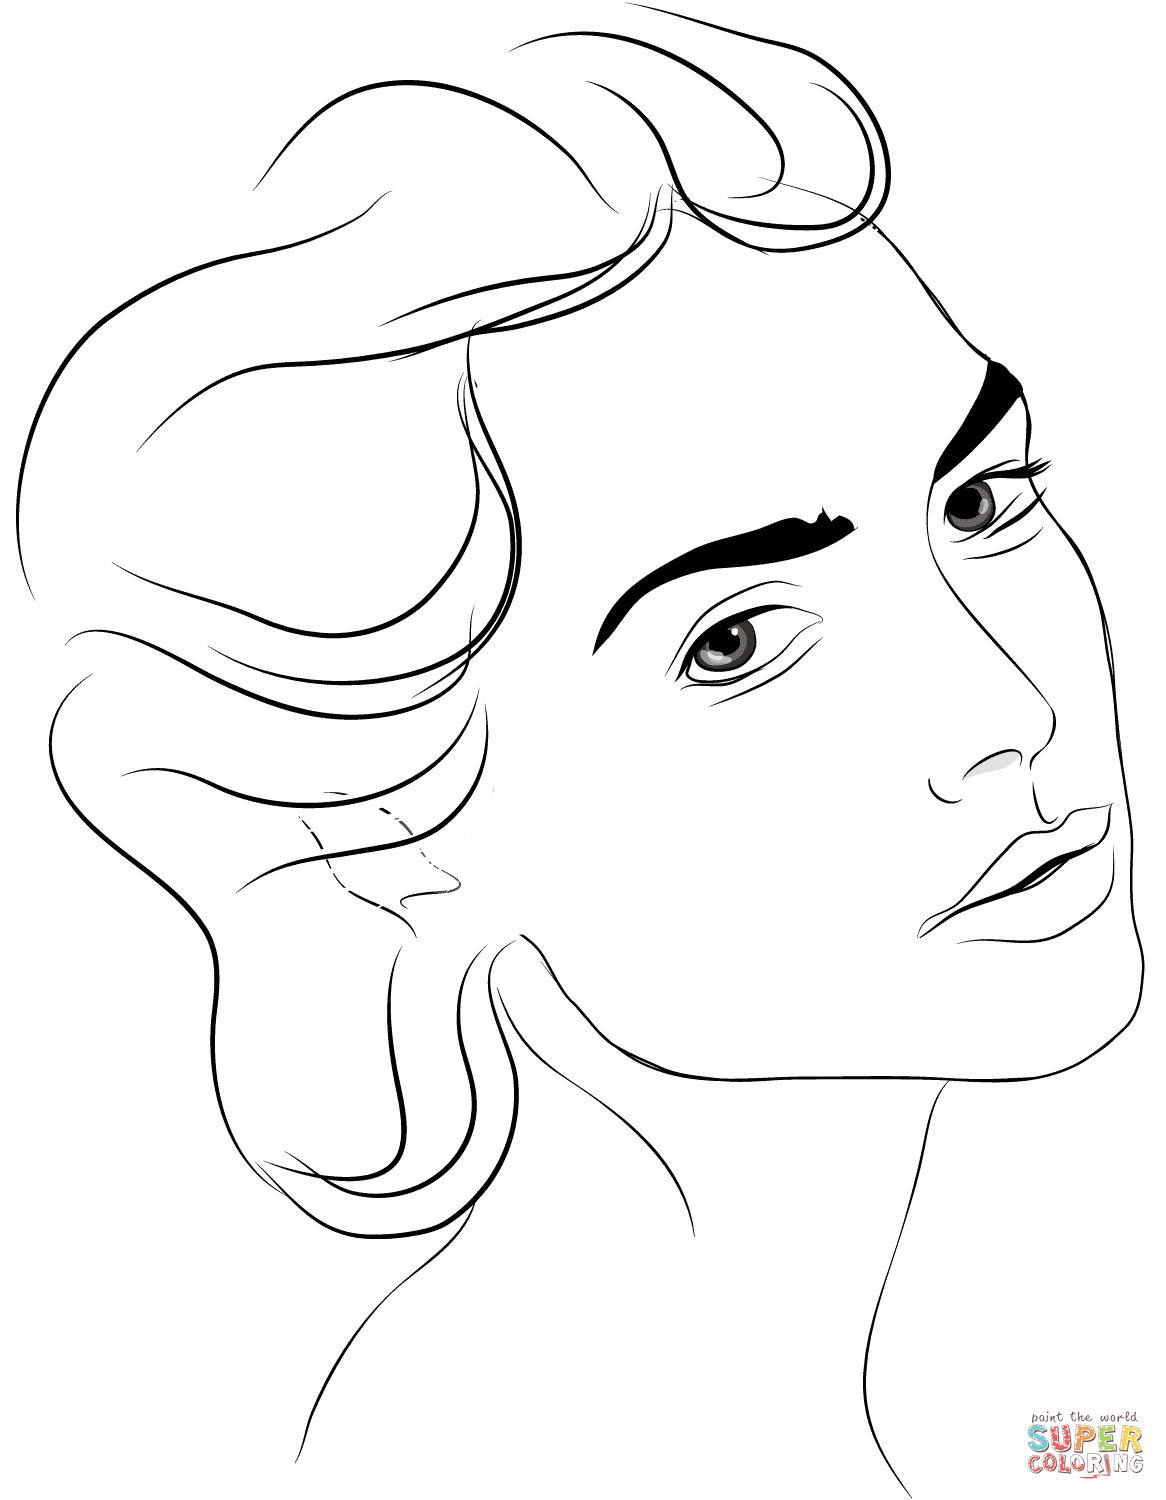 1166x1500 Woman's Face Coloring Page Free Printable Coloring Pages